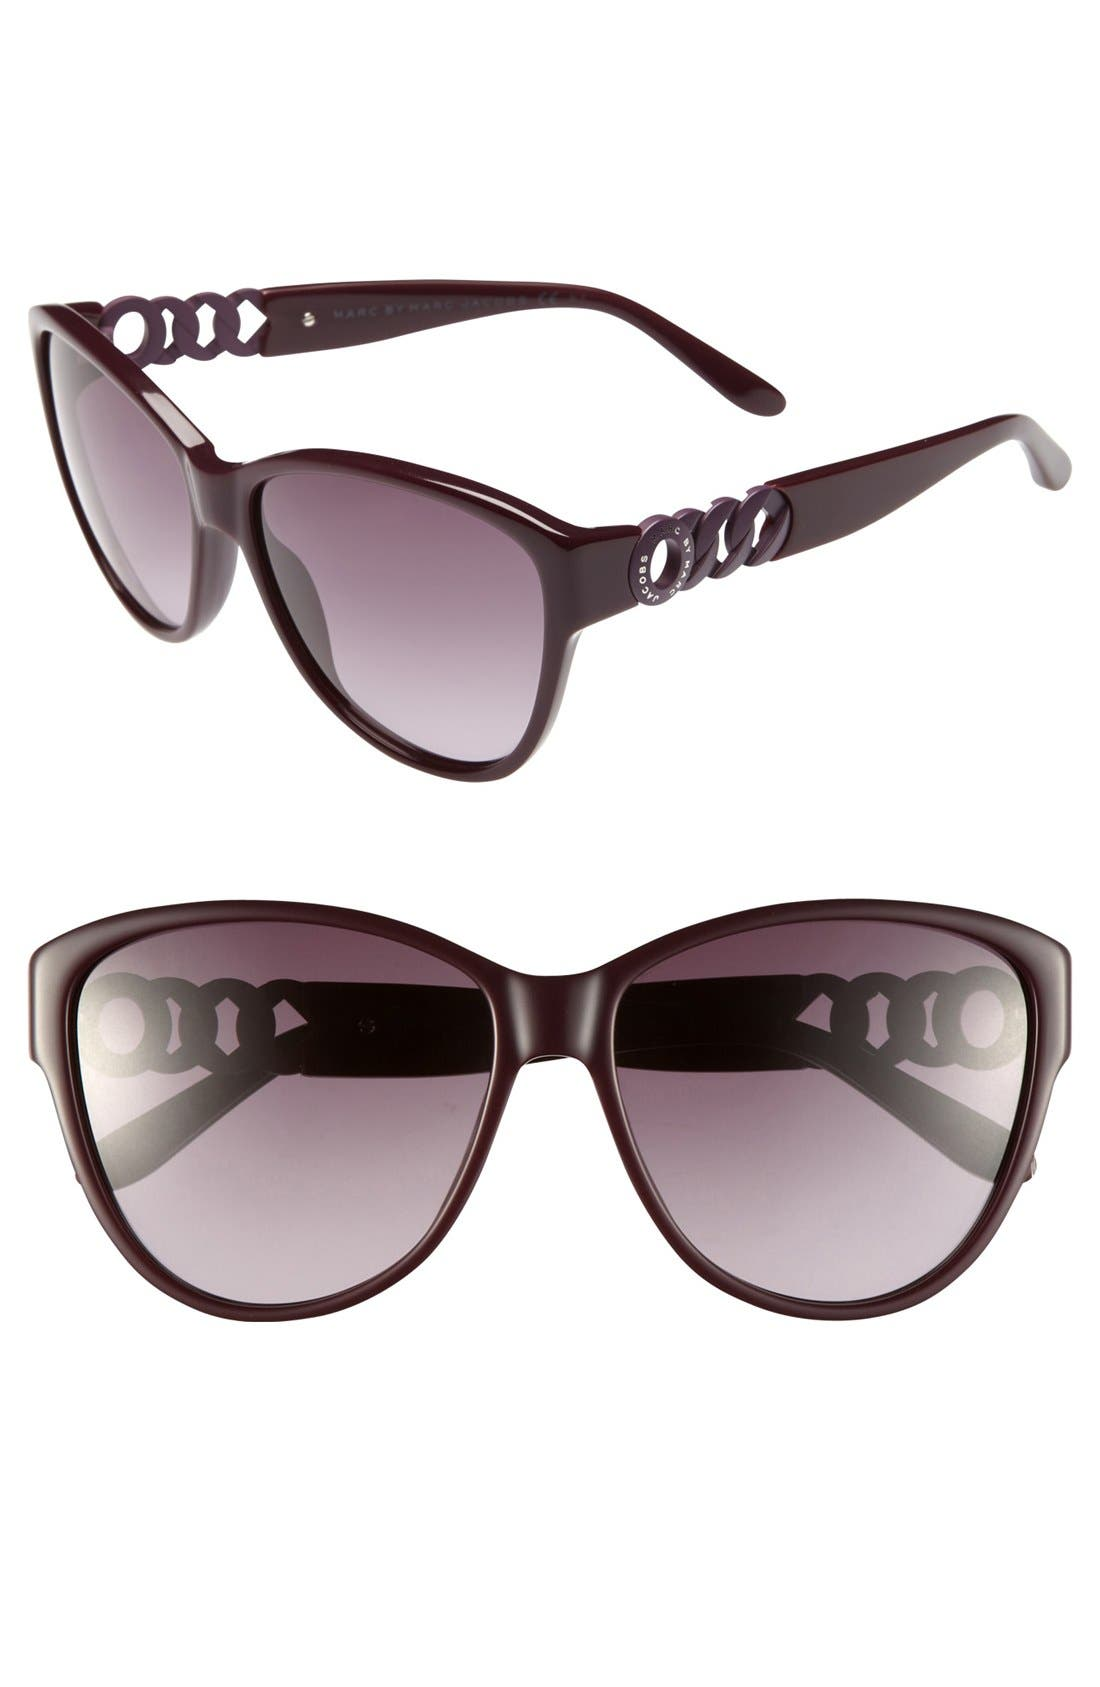 Alternate Image 1 Selected - MARC BY MARC JACOBS 58mm Retro Sunglasses